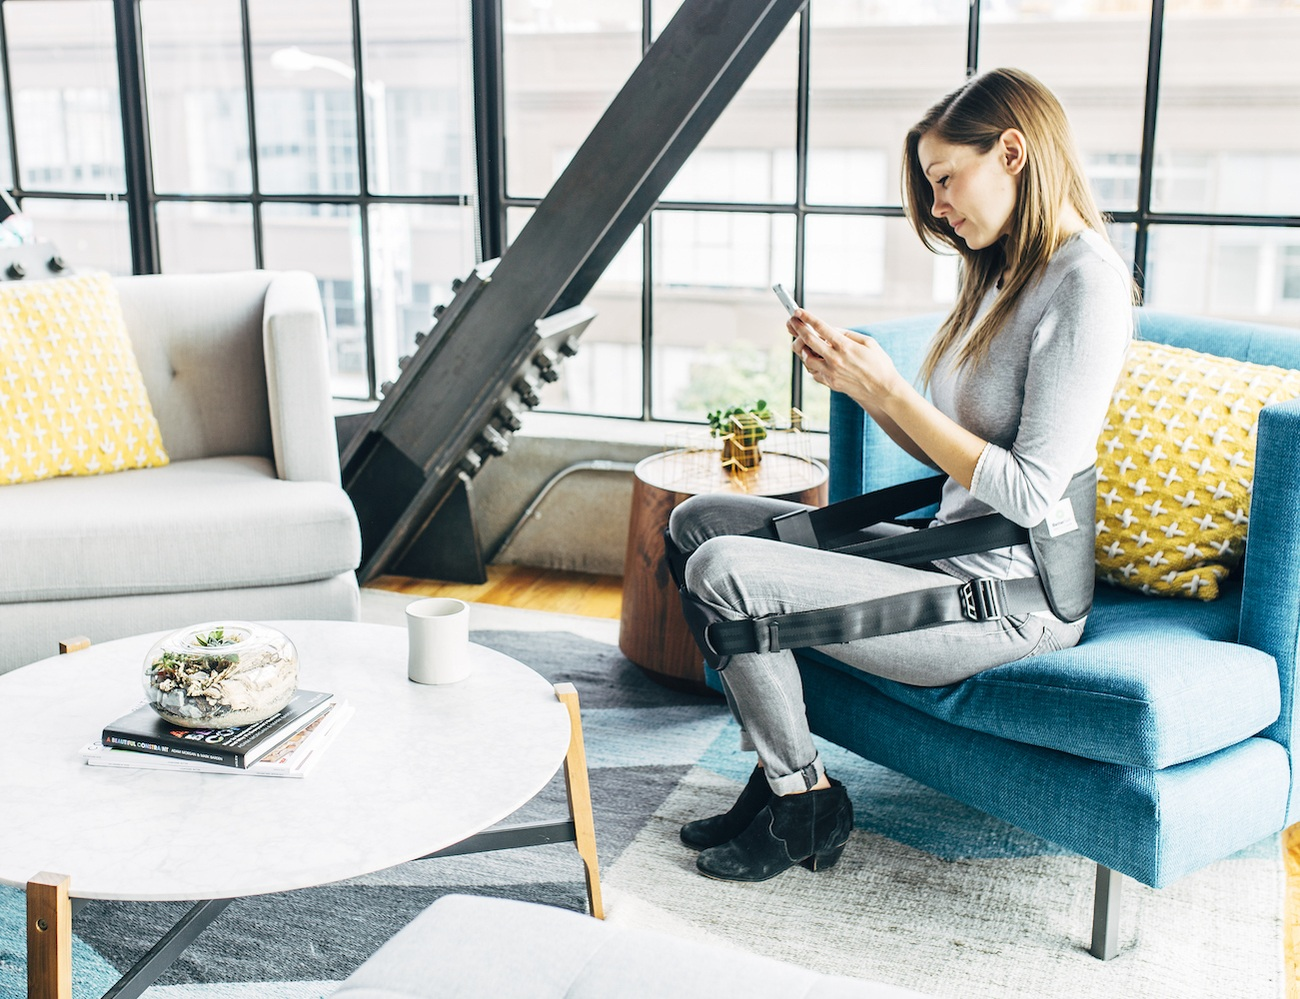 BetterBack Therapy Posture Support System